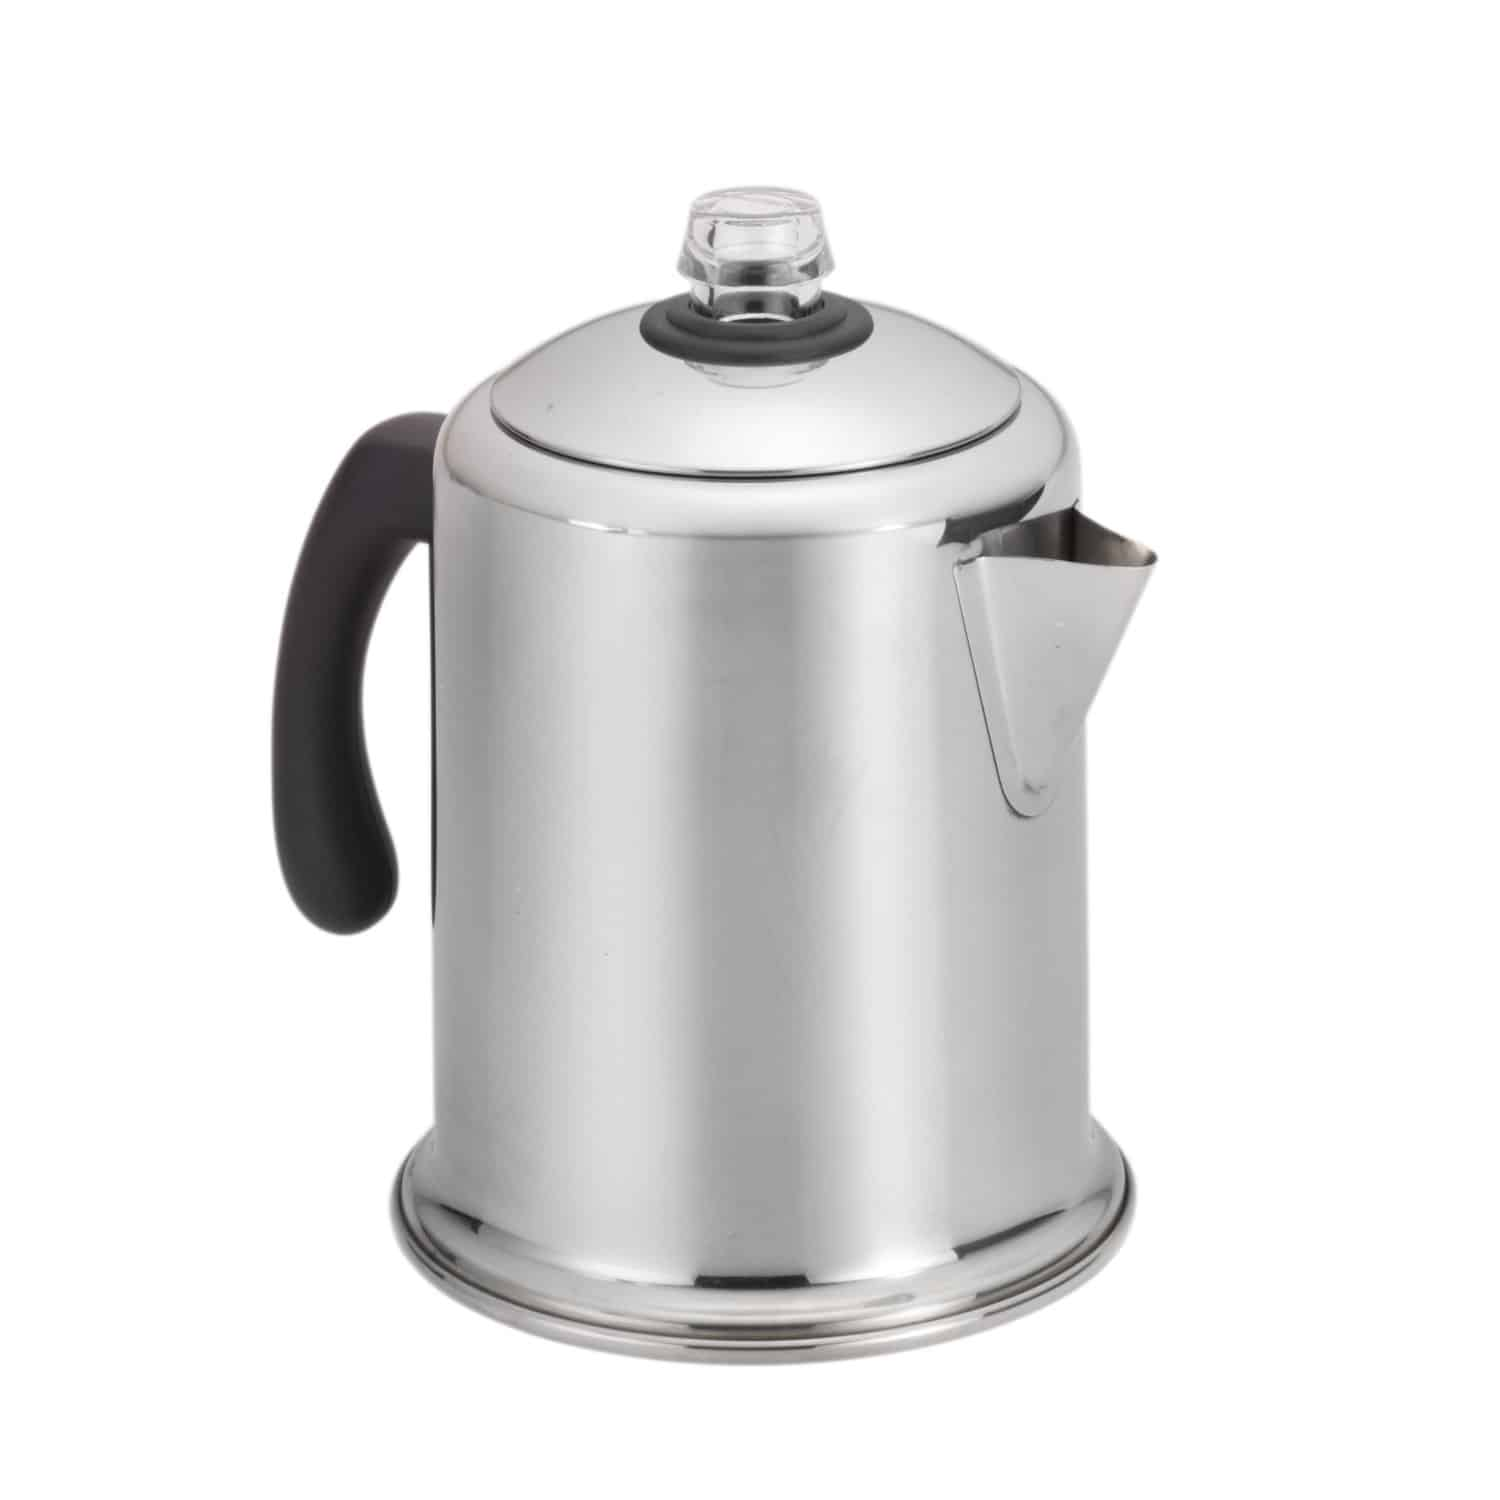 Coffee Pot Planter Best Rv Coffee Maker 5 Best Coffee Makers For Your Camper